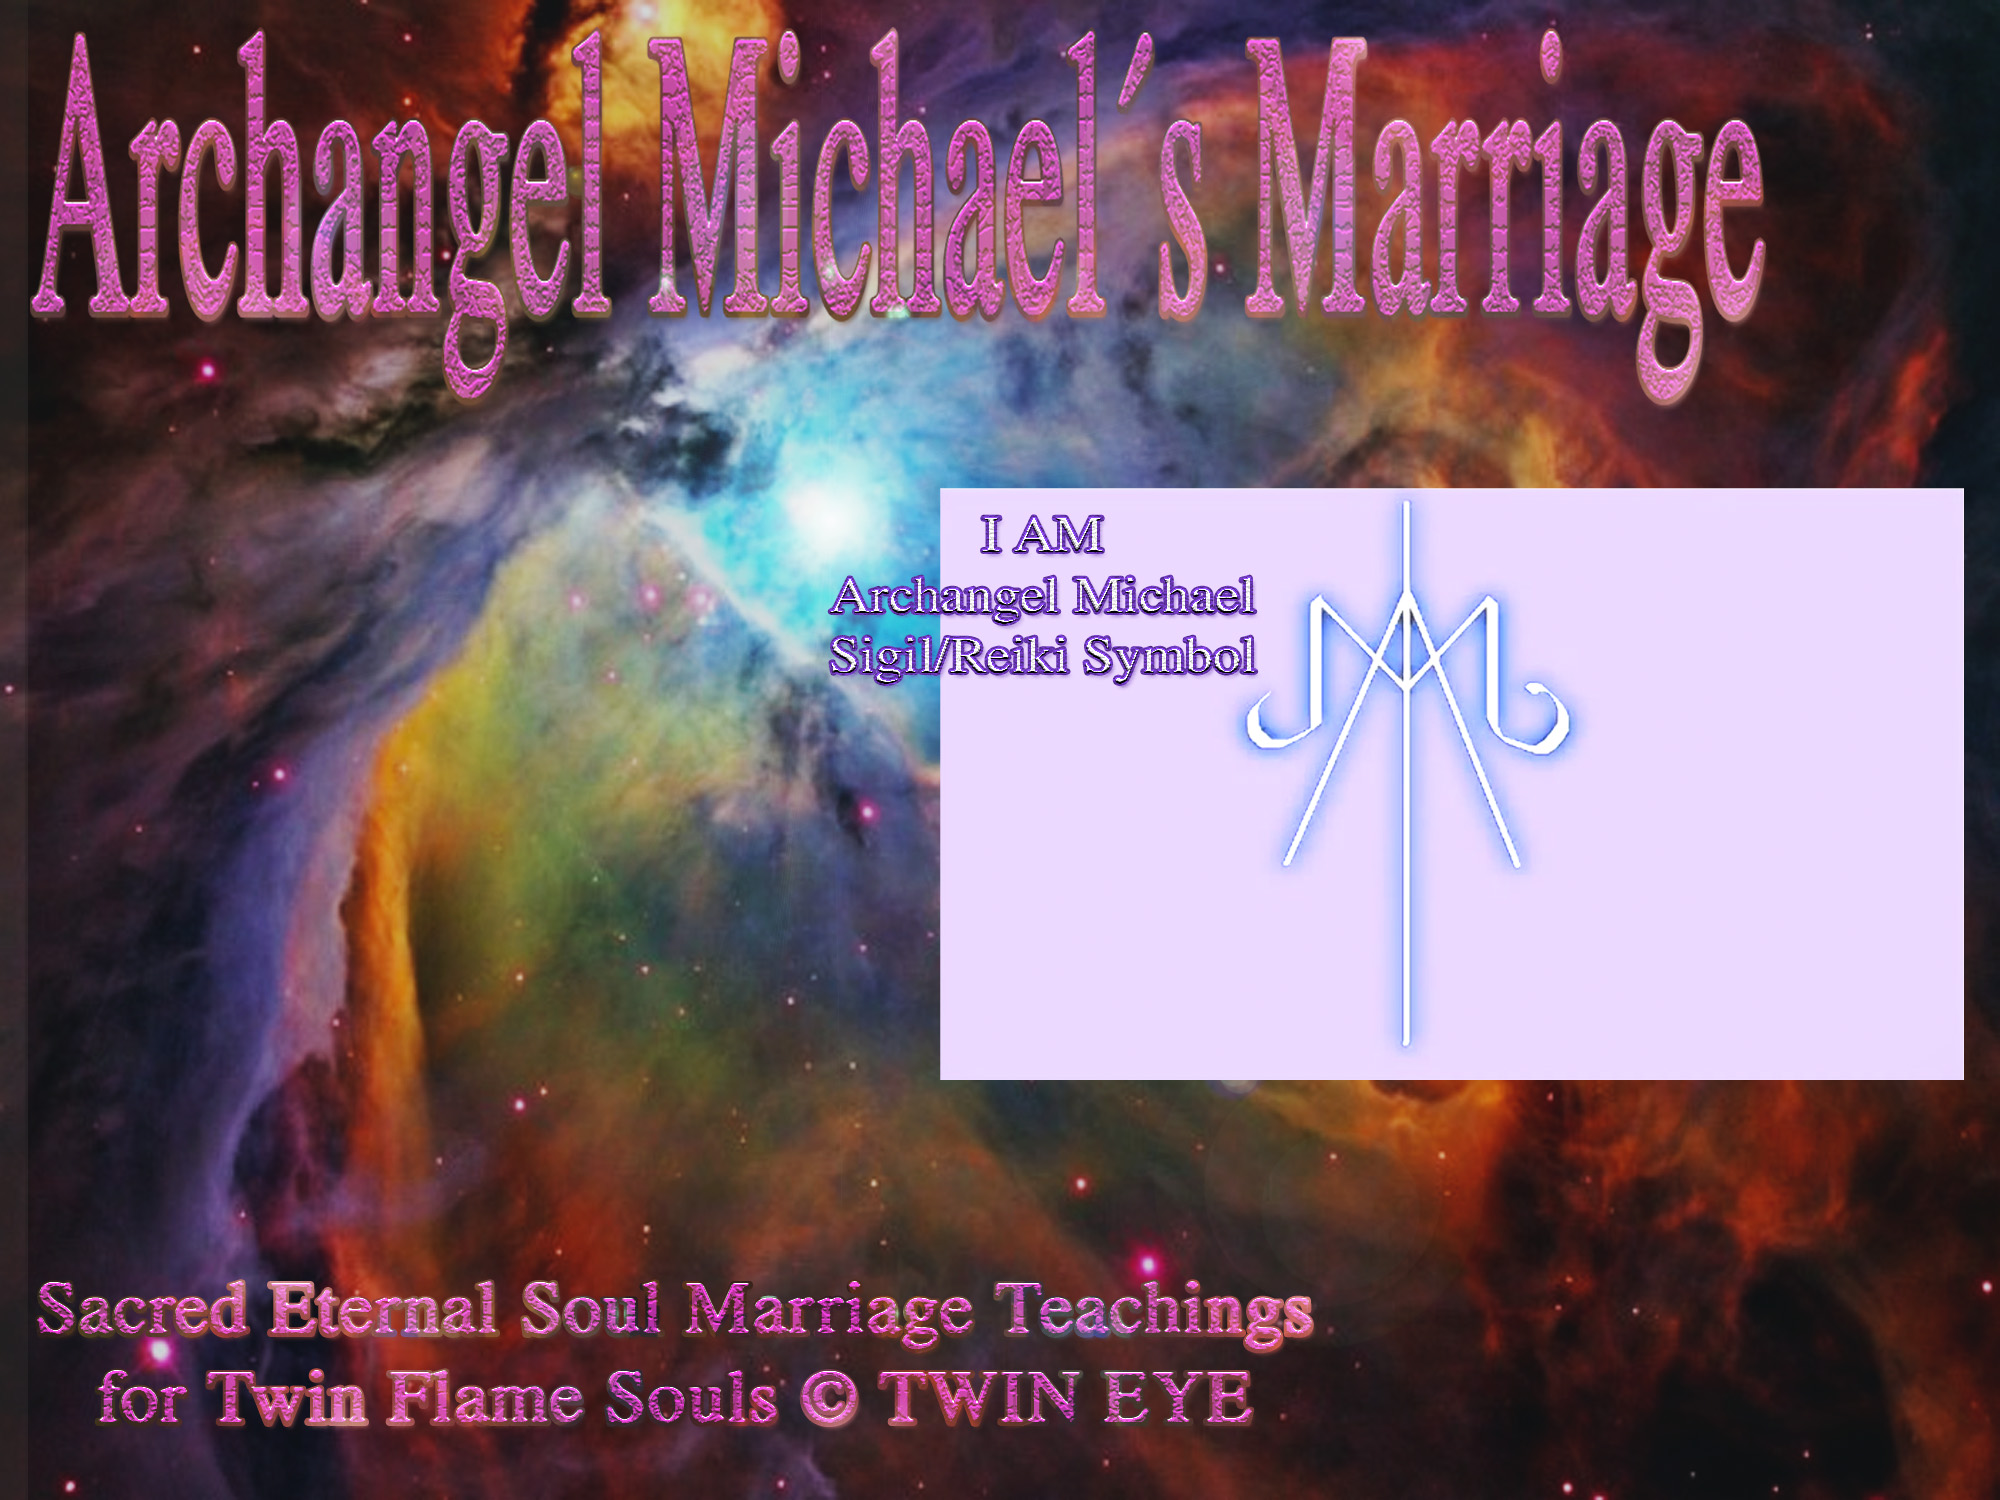 Archangel michaels marriage how to draw archangel michaels i am archangel michaels marriage how to draw archangel michaels i am energy symbol biocorpaavc Images